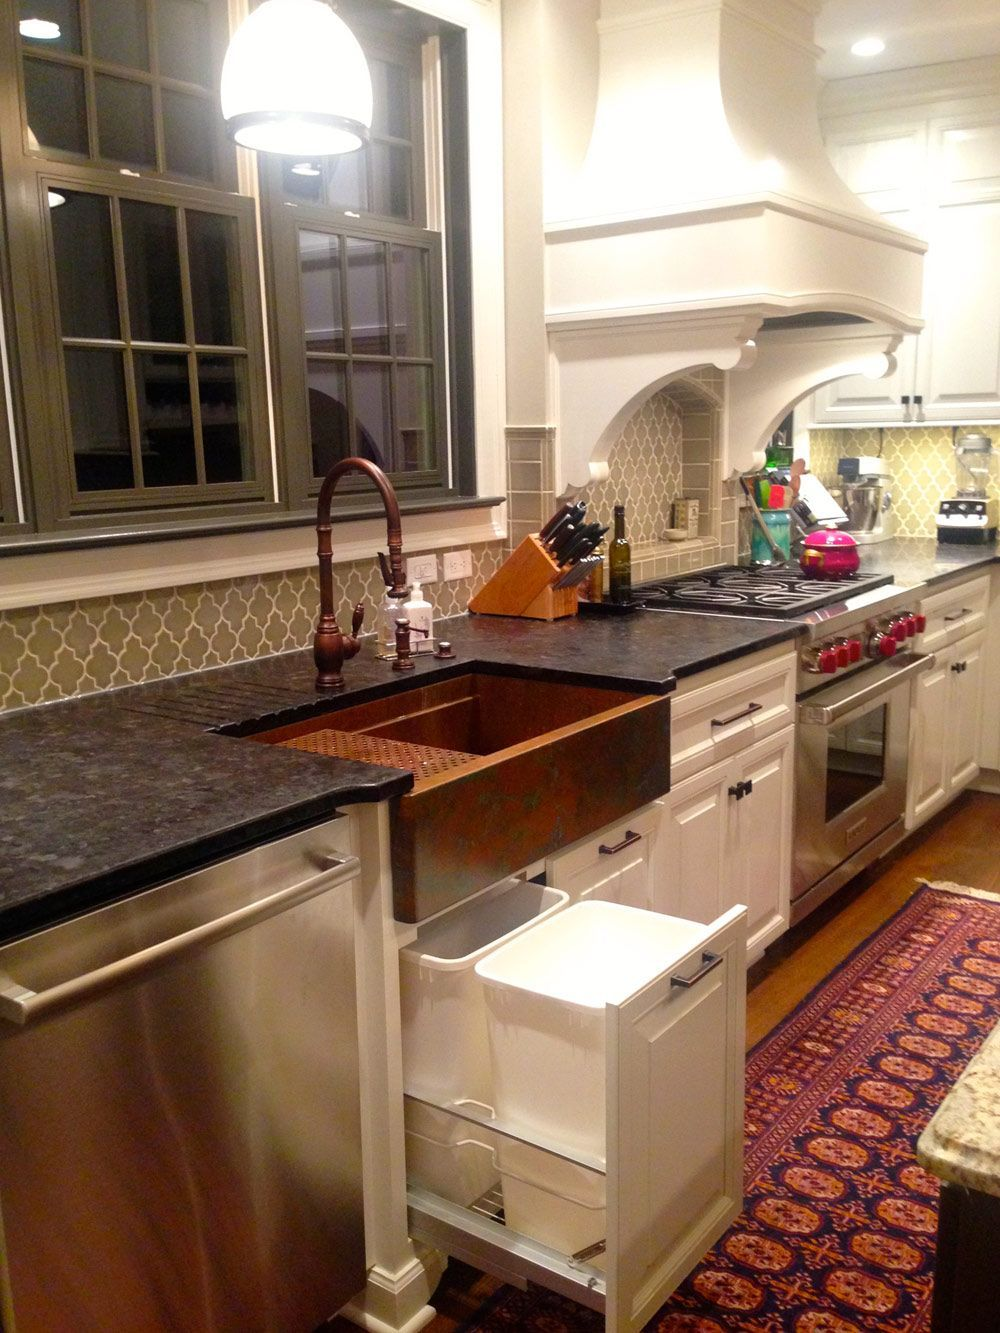 12 Ravishing Tips In Selecting The Right Kitchen Sink Ideas